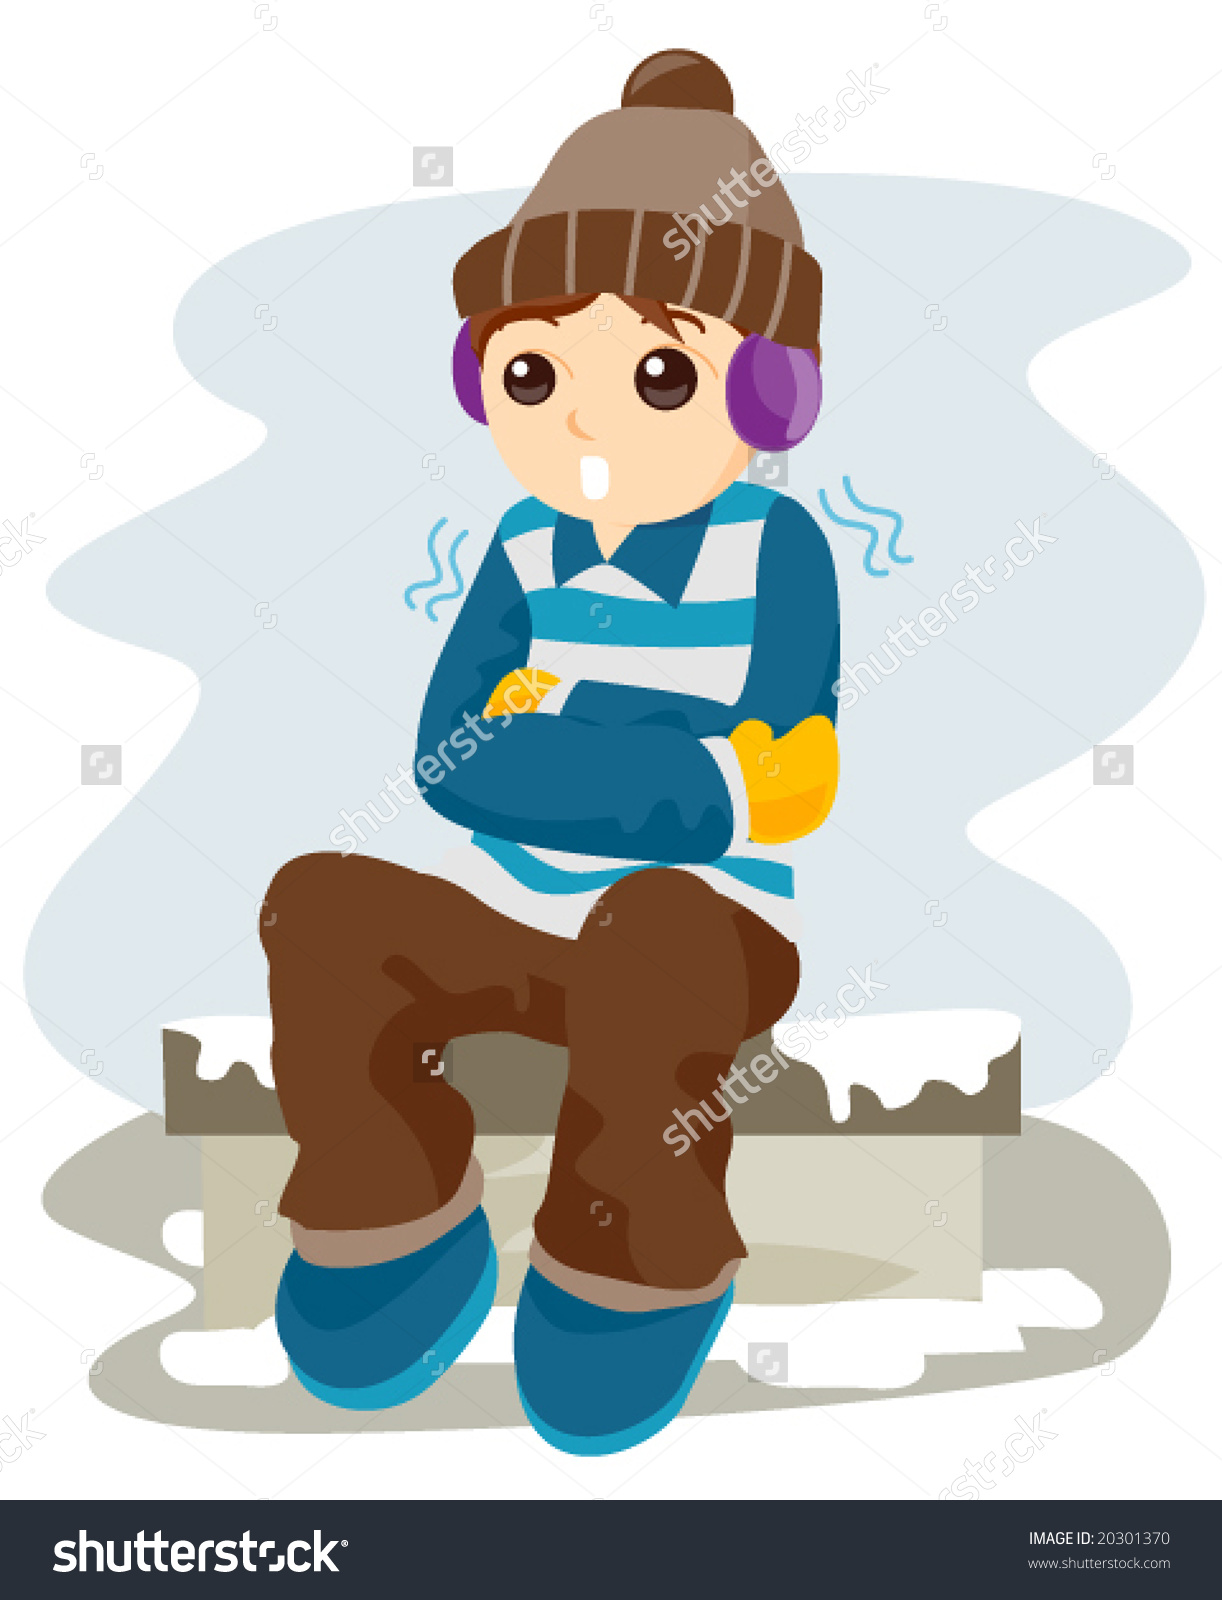 Freezing Cold Vector Stock Vector 20301370.